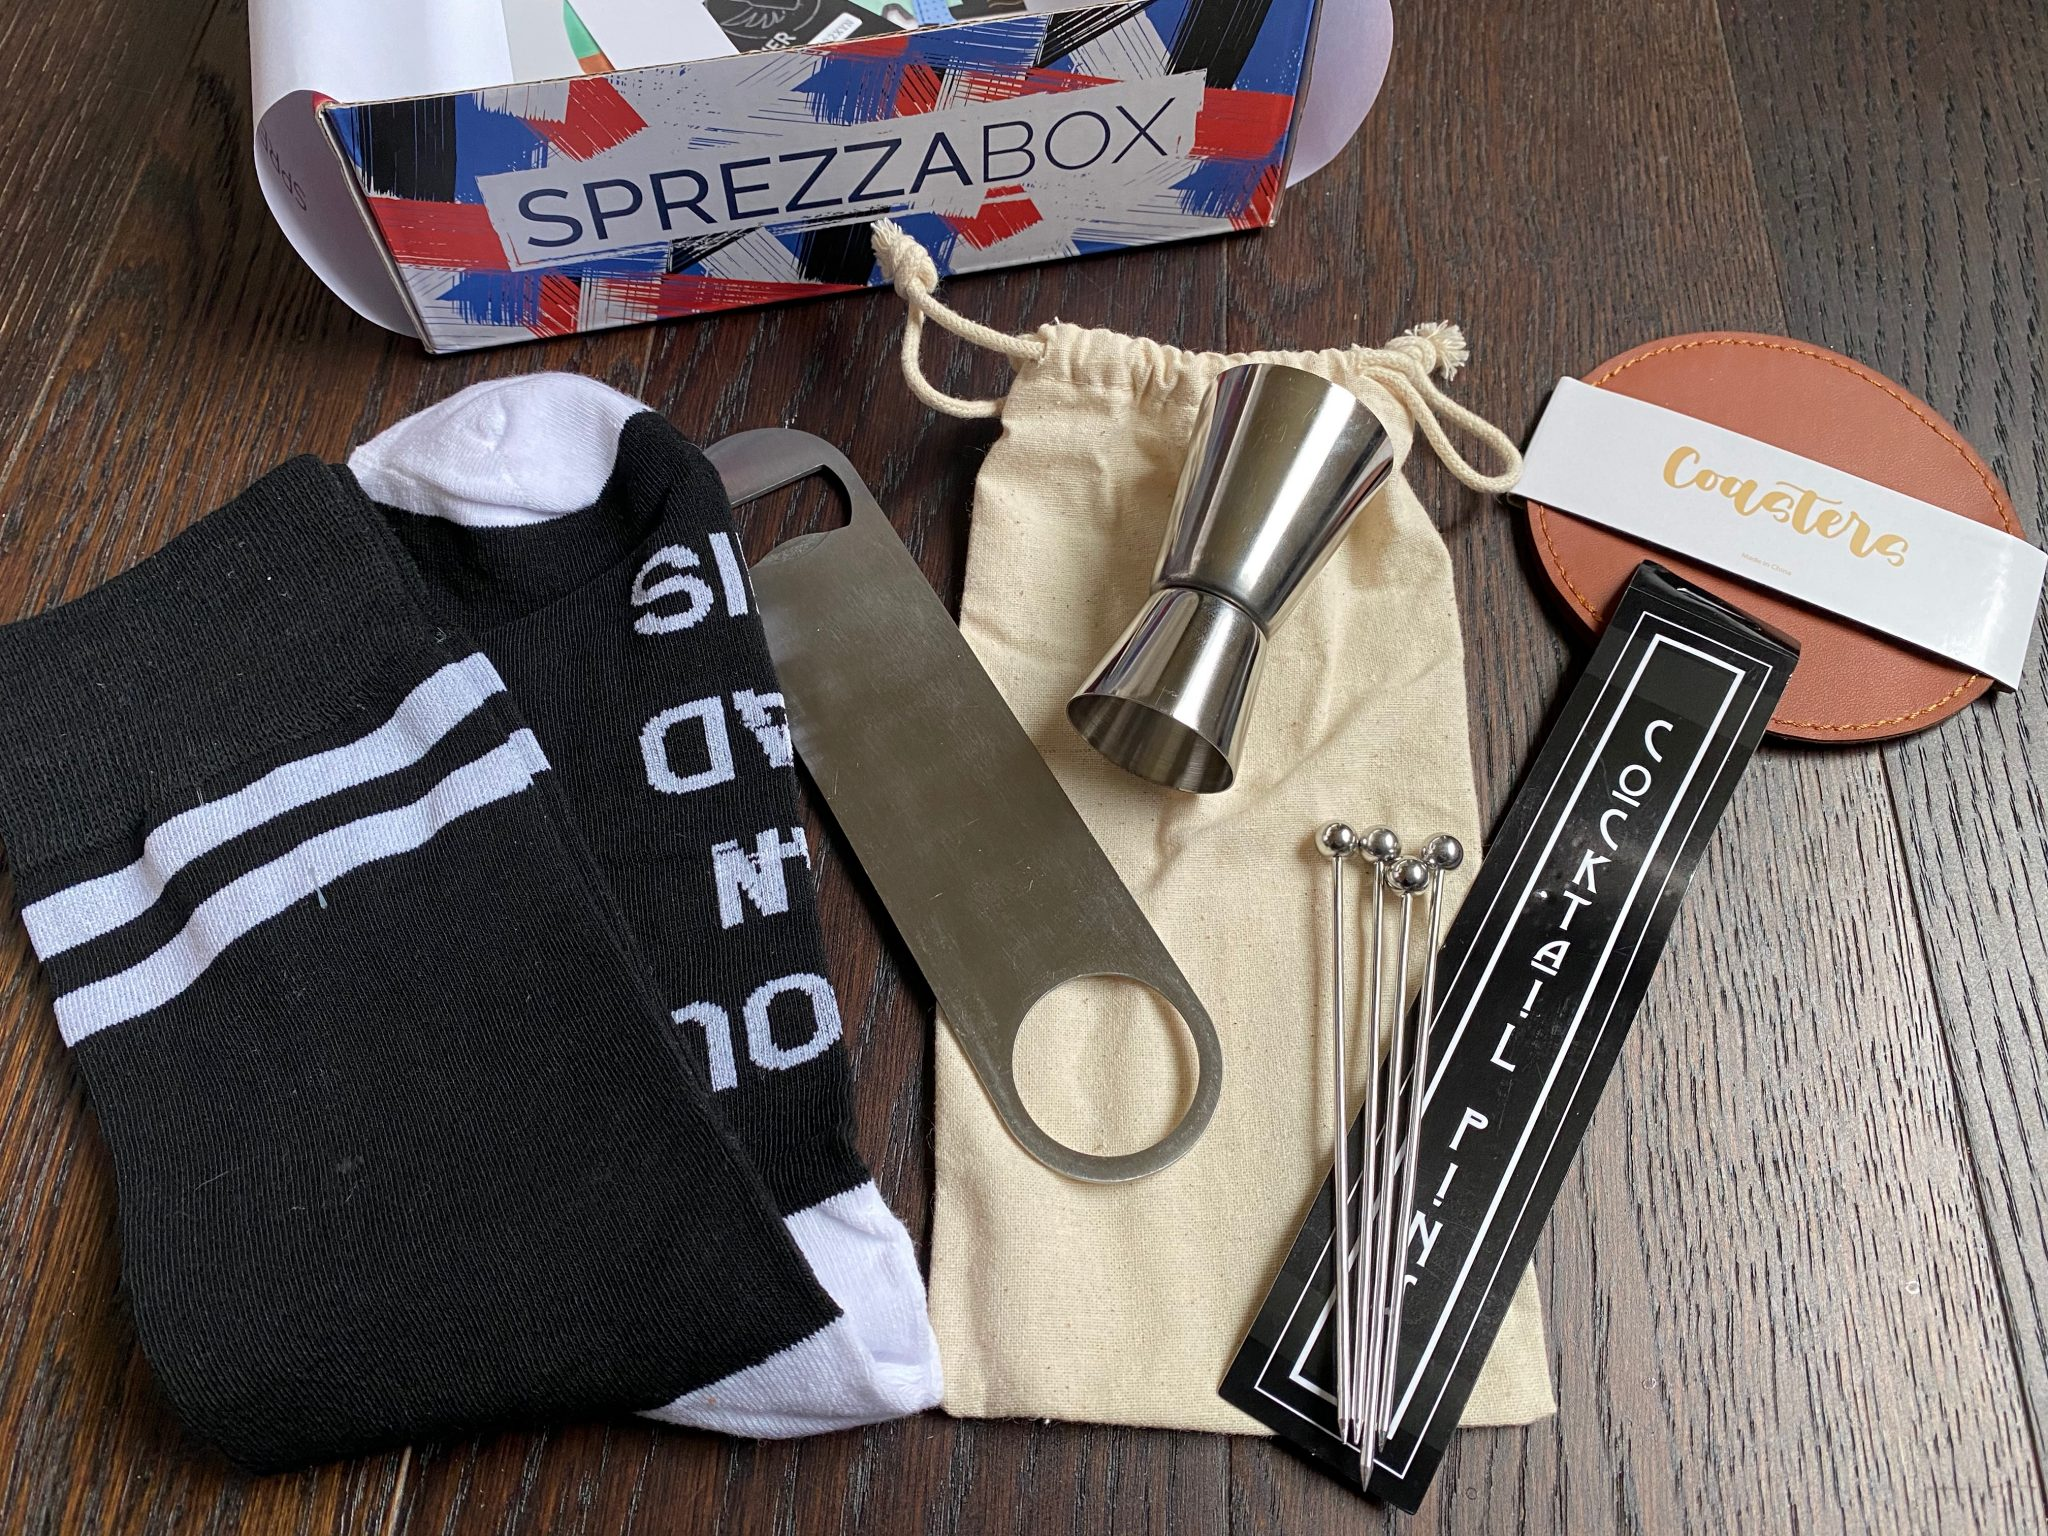 SprezzaBox Review + Coupon Code – January 2021